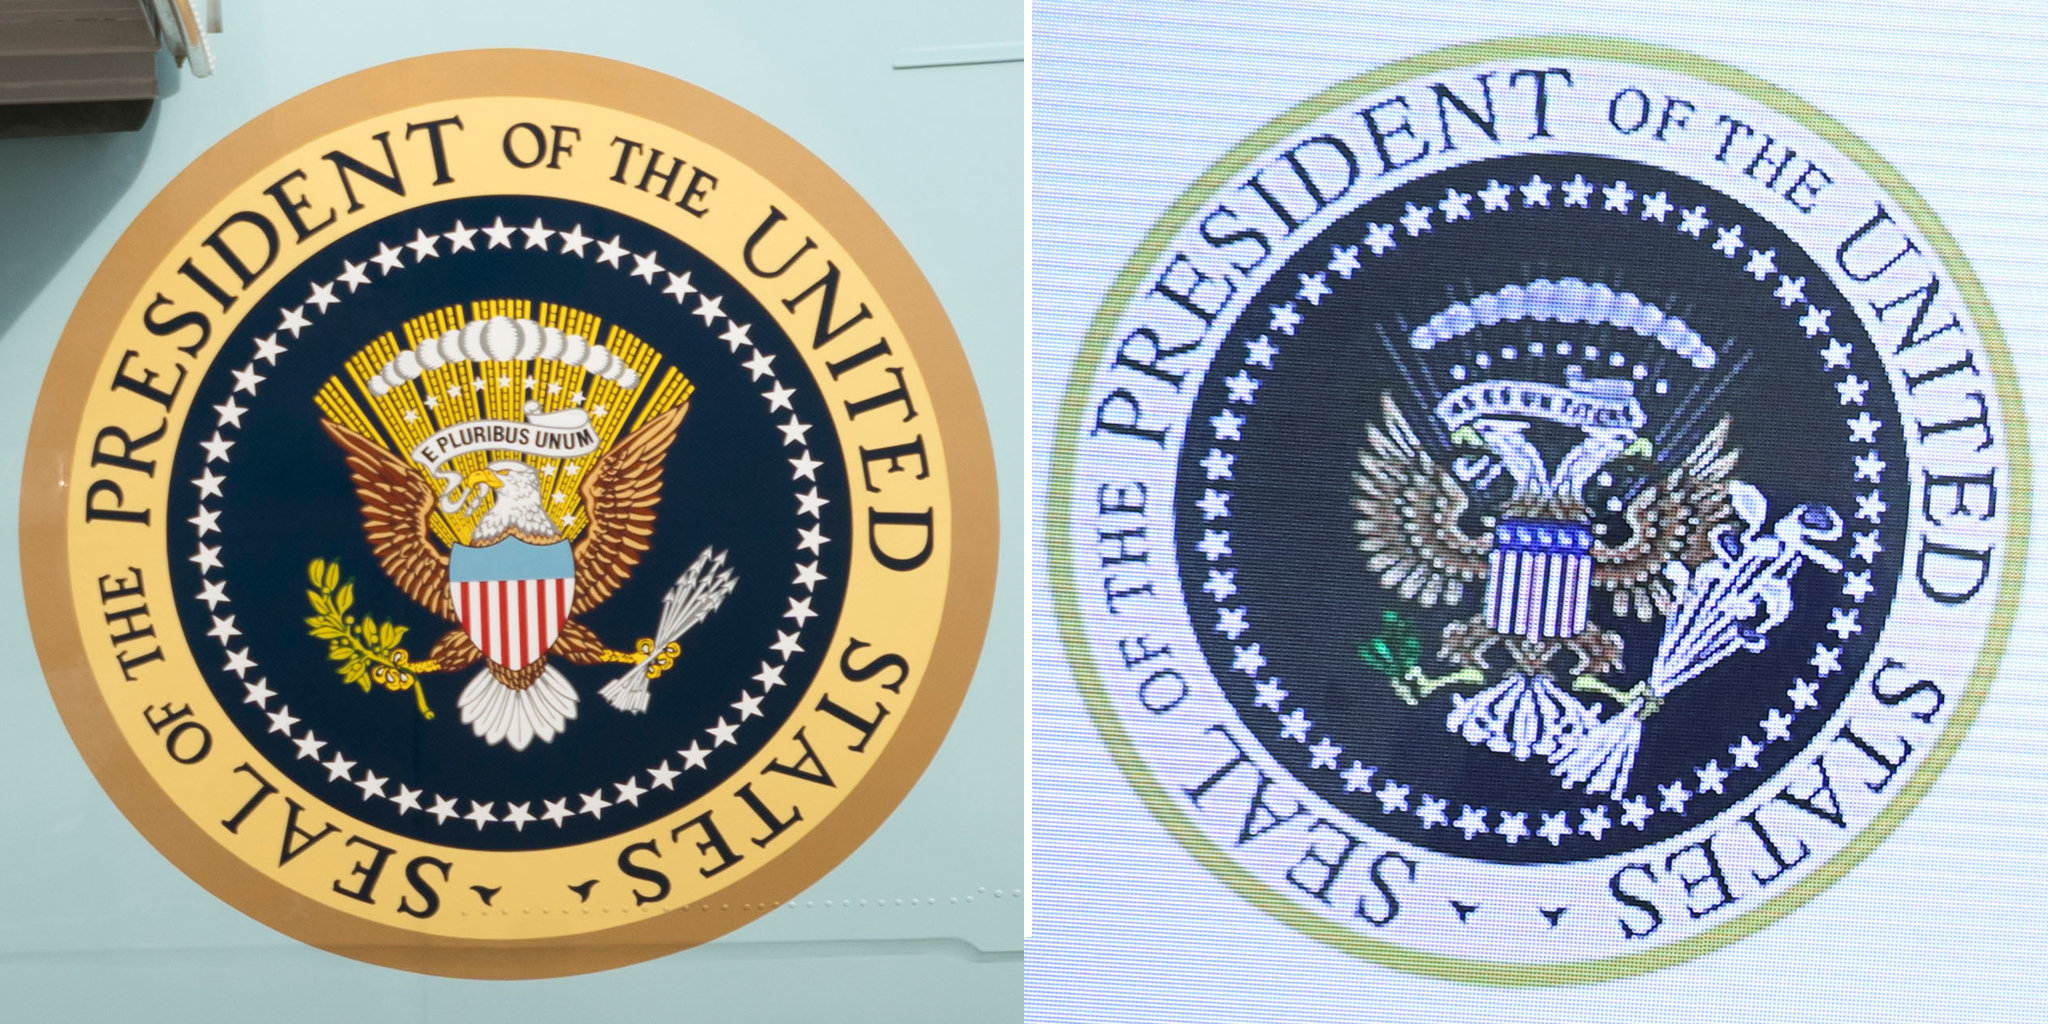 He Made a Fake Presidential Seal. Then Came the Media Rumpus.